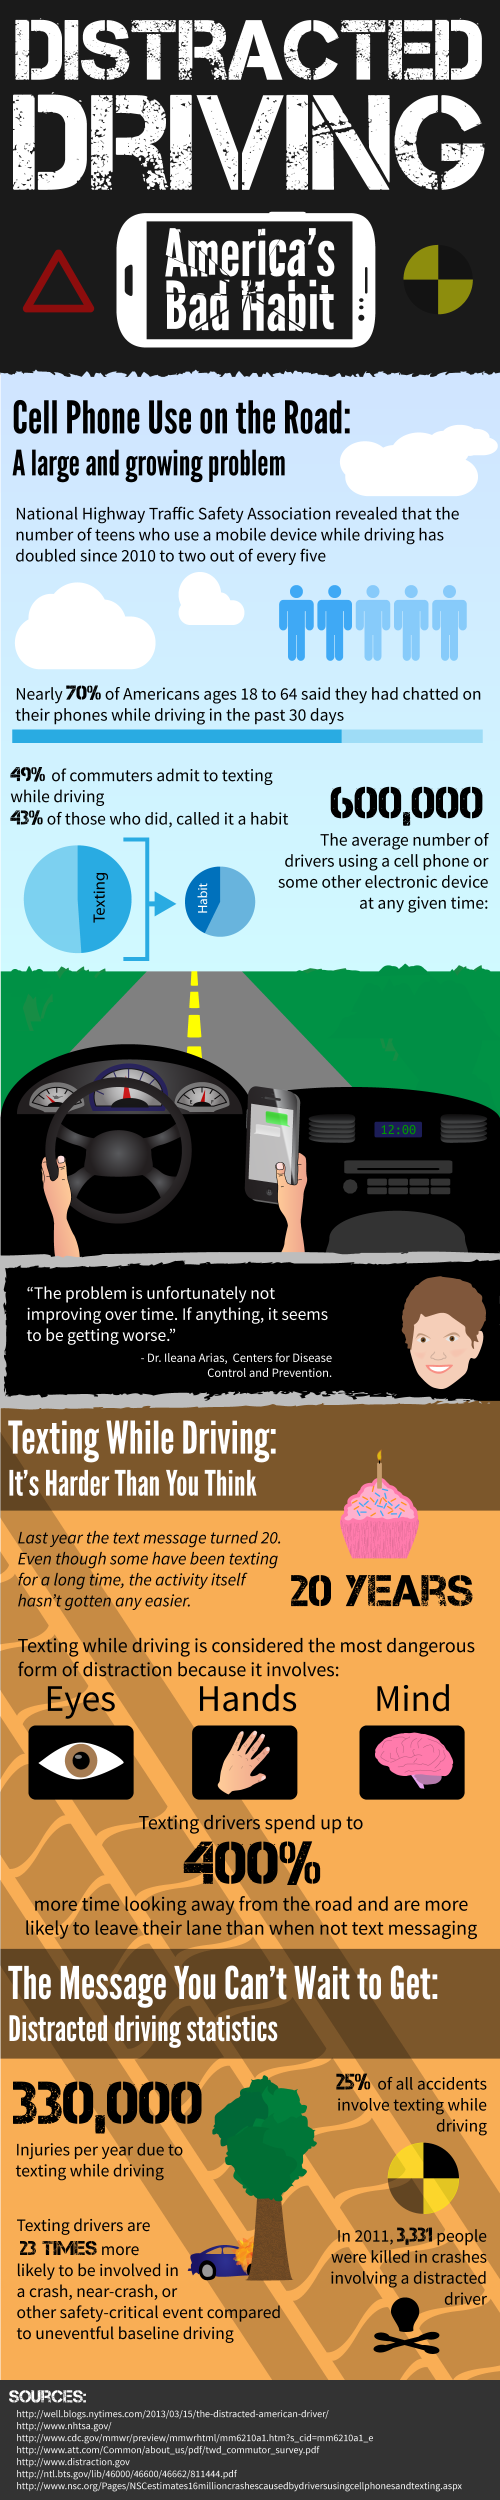 Distracted Driving–America's Bad Habit http-::www.benjamintravis.com:project:distracted-driving